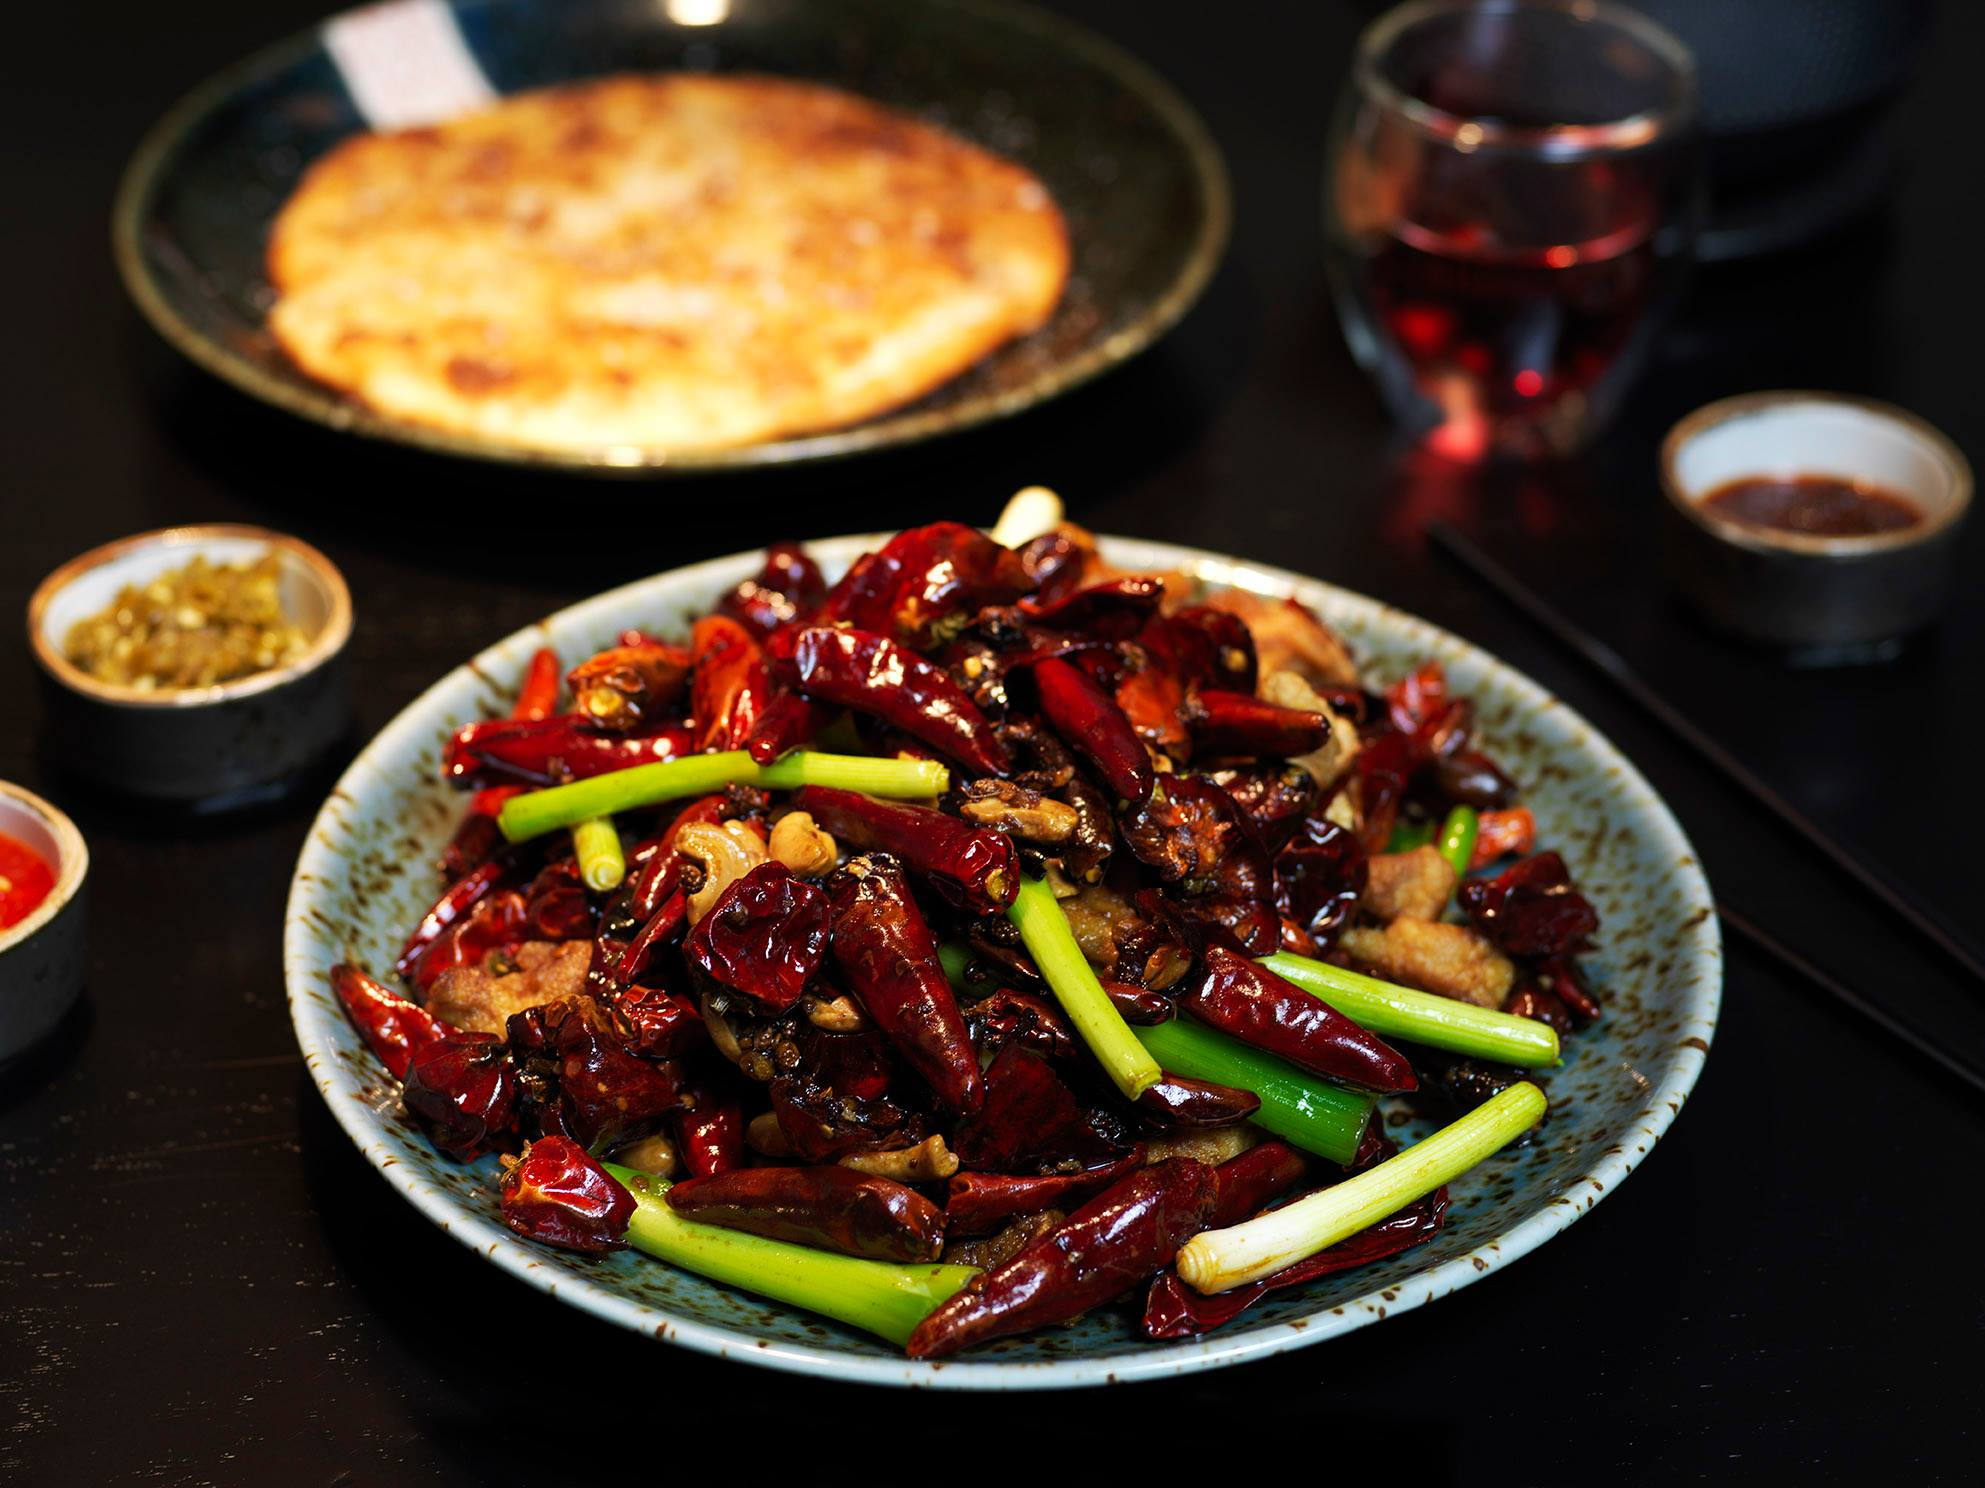 Spice Temple Sydney fires up the woks ready for re-opening